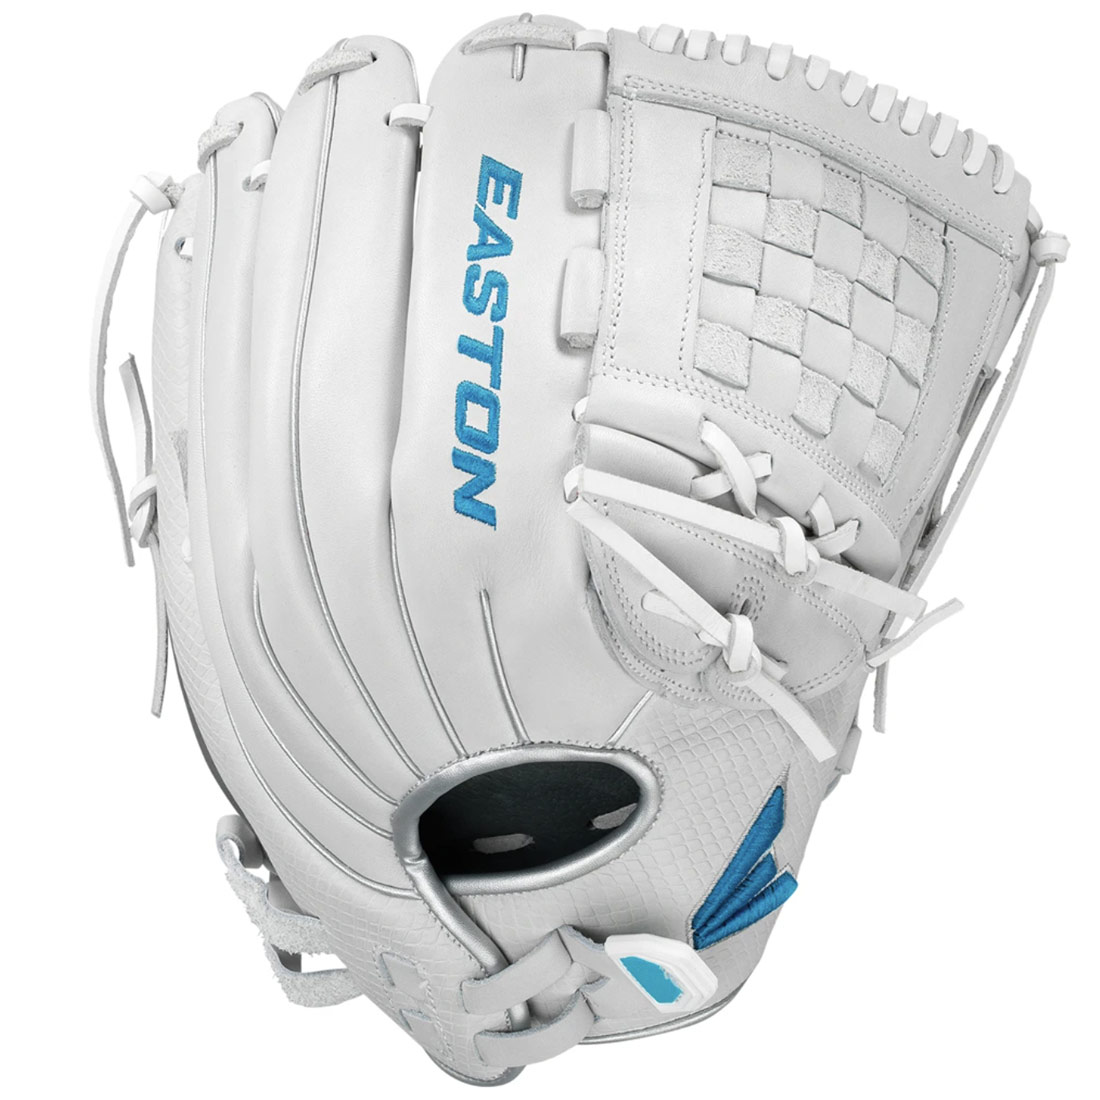 "Easton Ghost Tournament Elite Fastpitch Softball Glove 12"" GTEFP12"